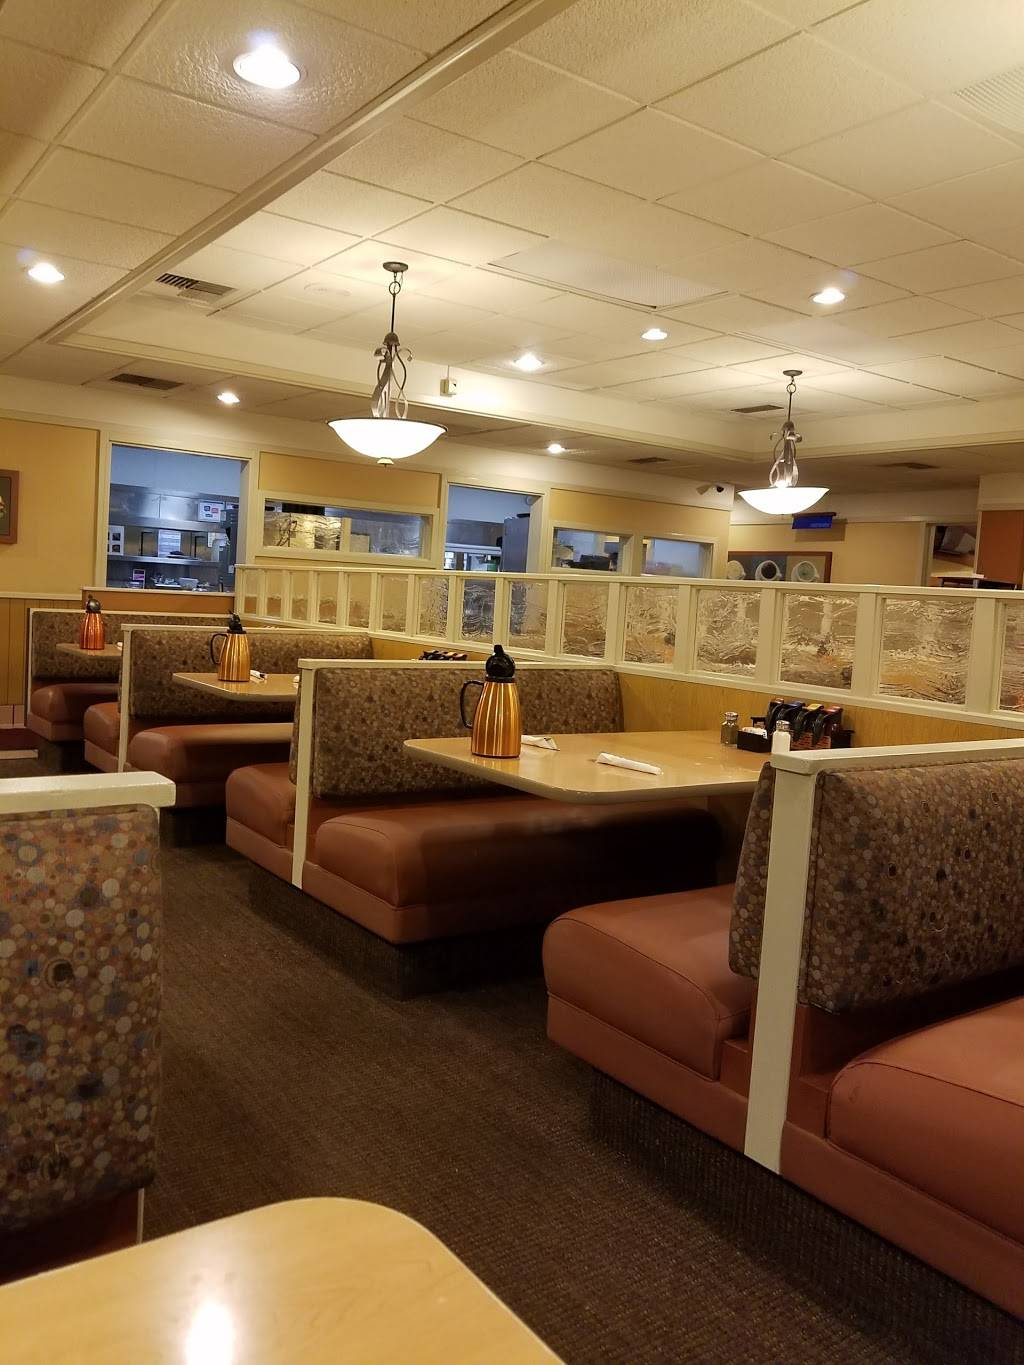 IHOP - restaurant  | Photo 6 of 10 | Address: 1674 E Hammer Ln, Stockton, CA 95210, USA | Phone: (209) 951-3137